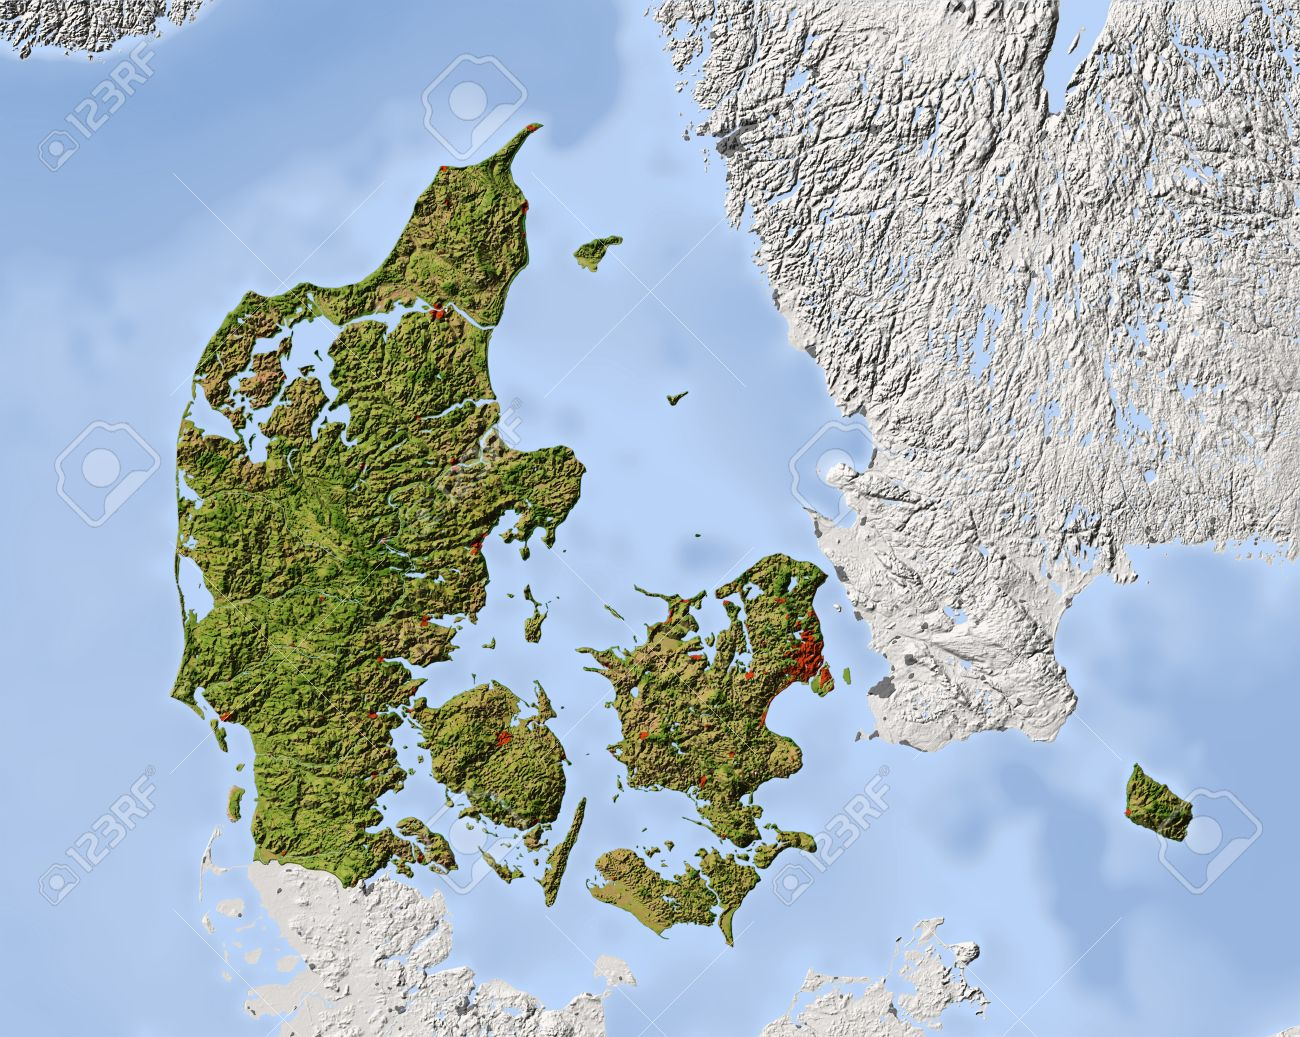 Denmark Topographic Map.Denmark Shaded Relief Map Surrounding Territory Greyed Out